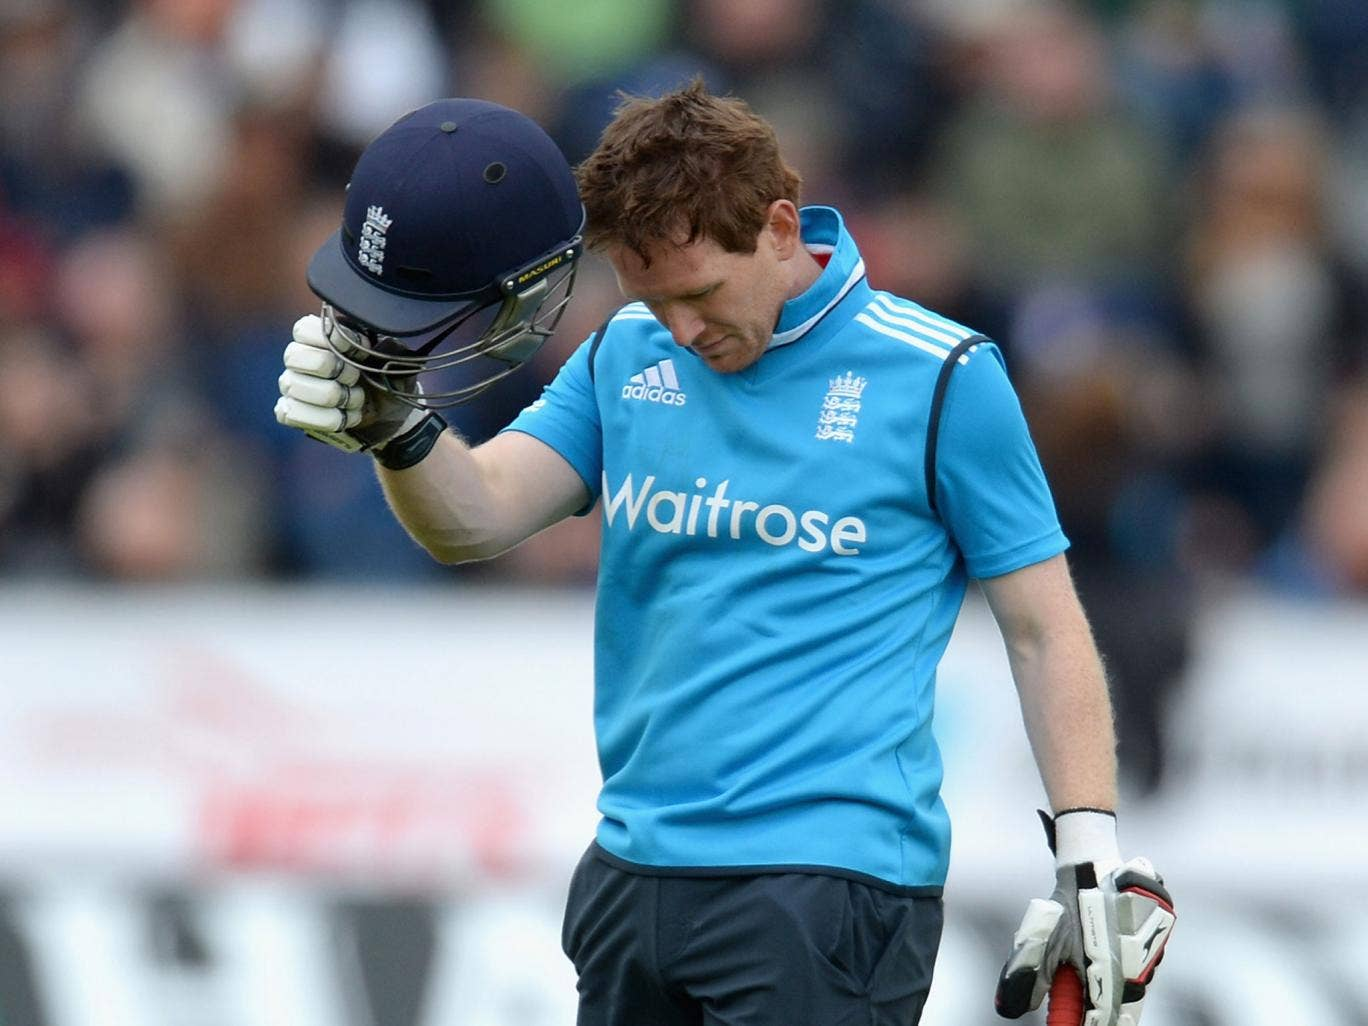 Eoin Morgan top-scored for England with 40 runs in the defeat